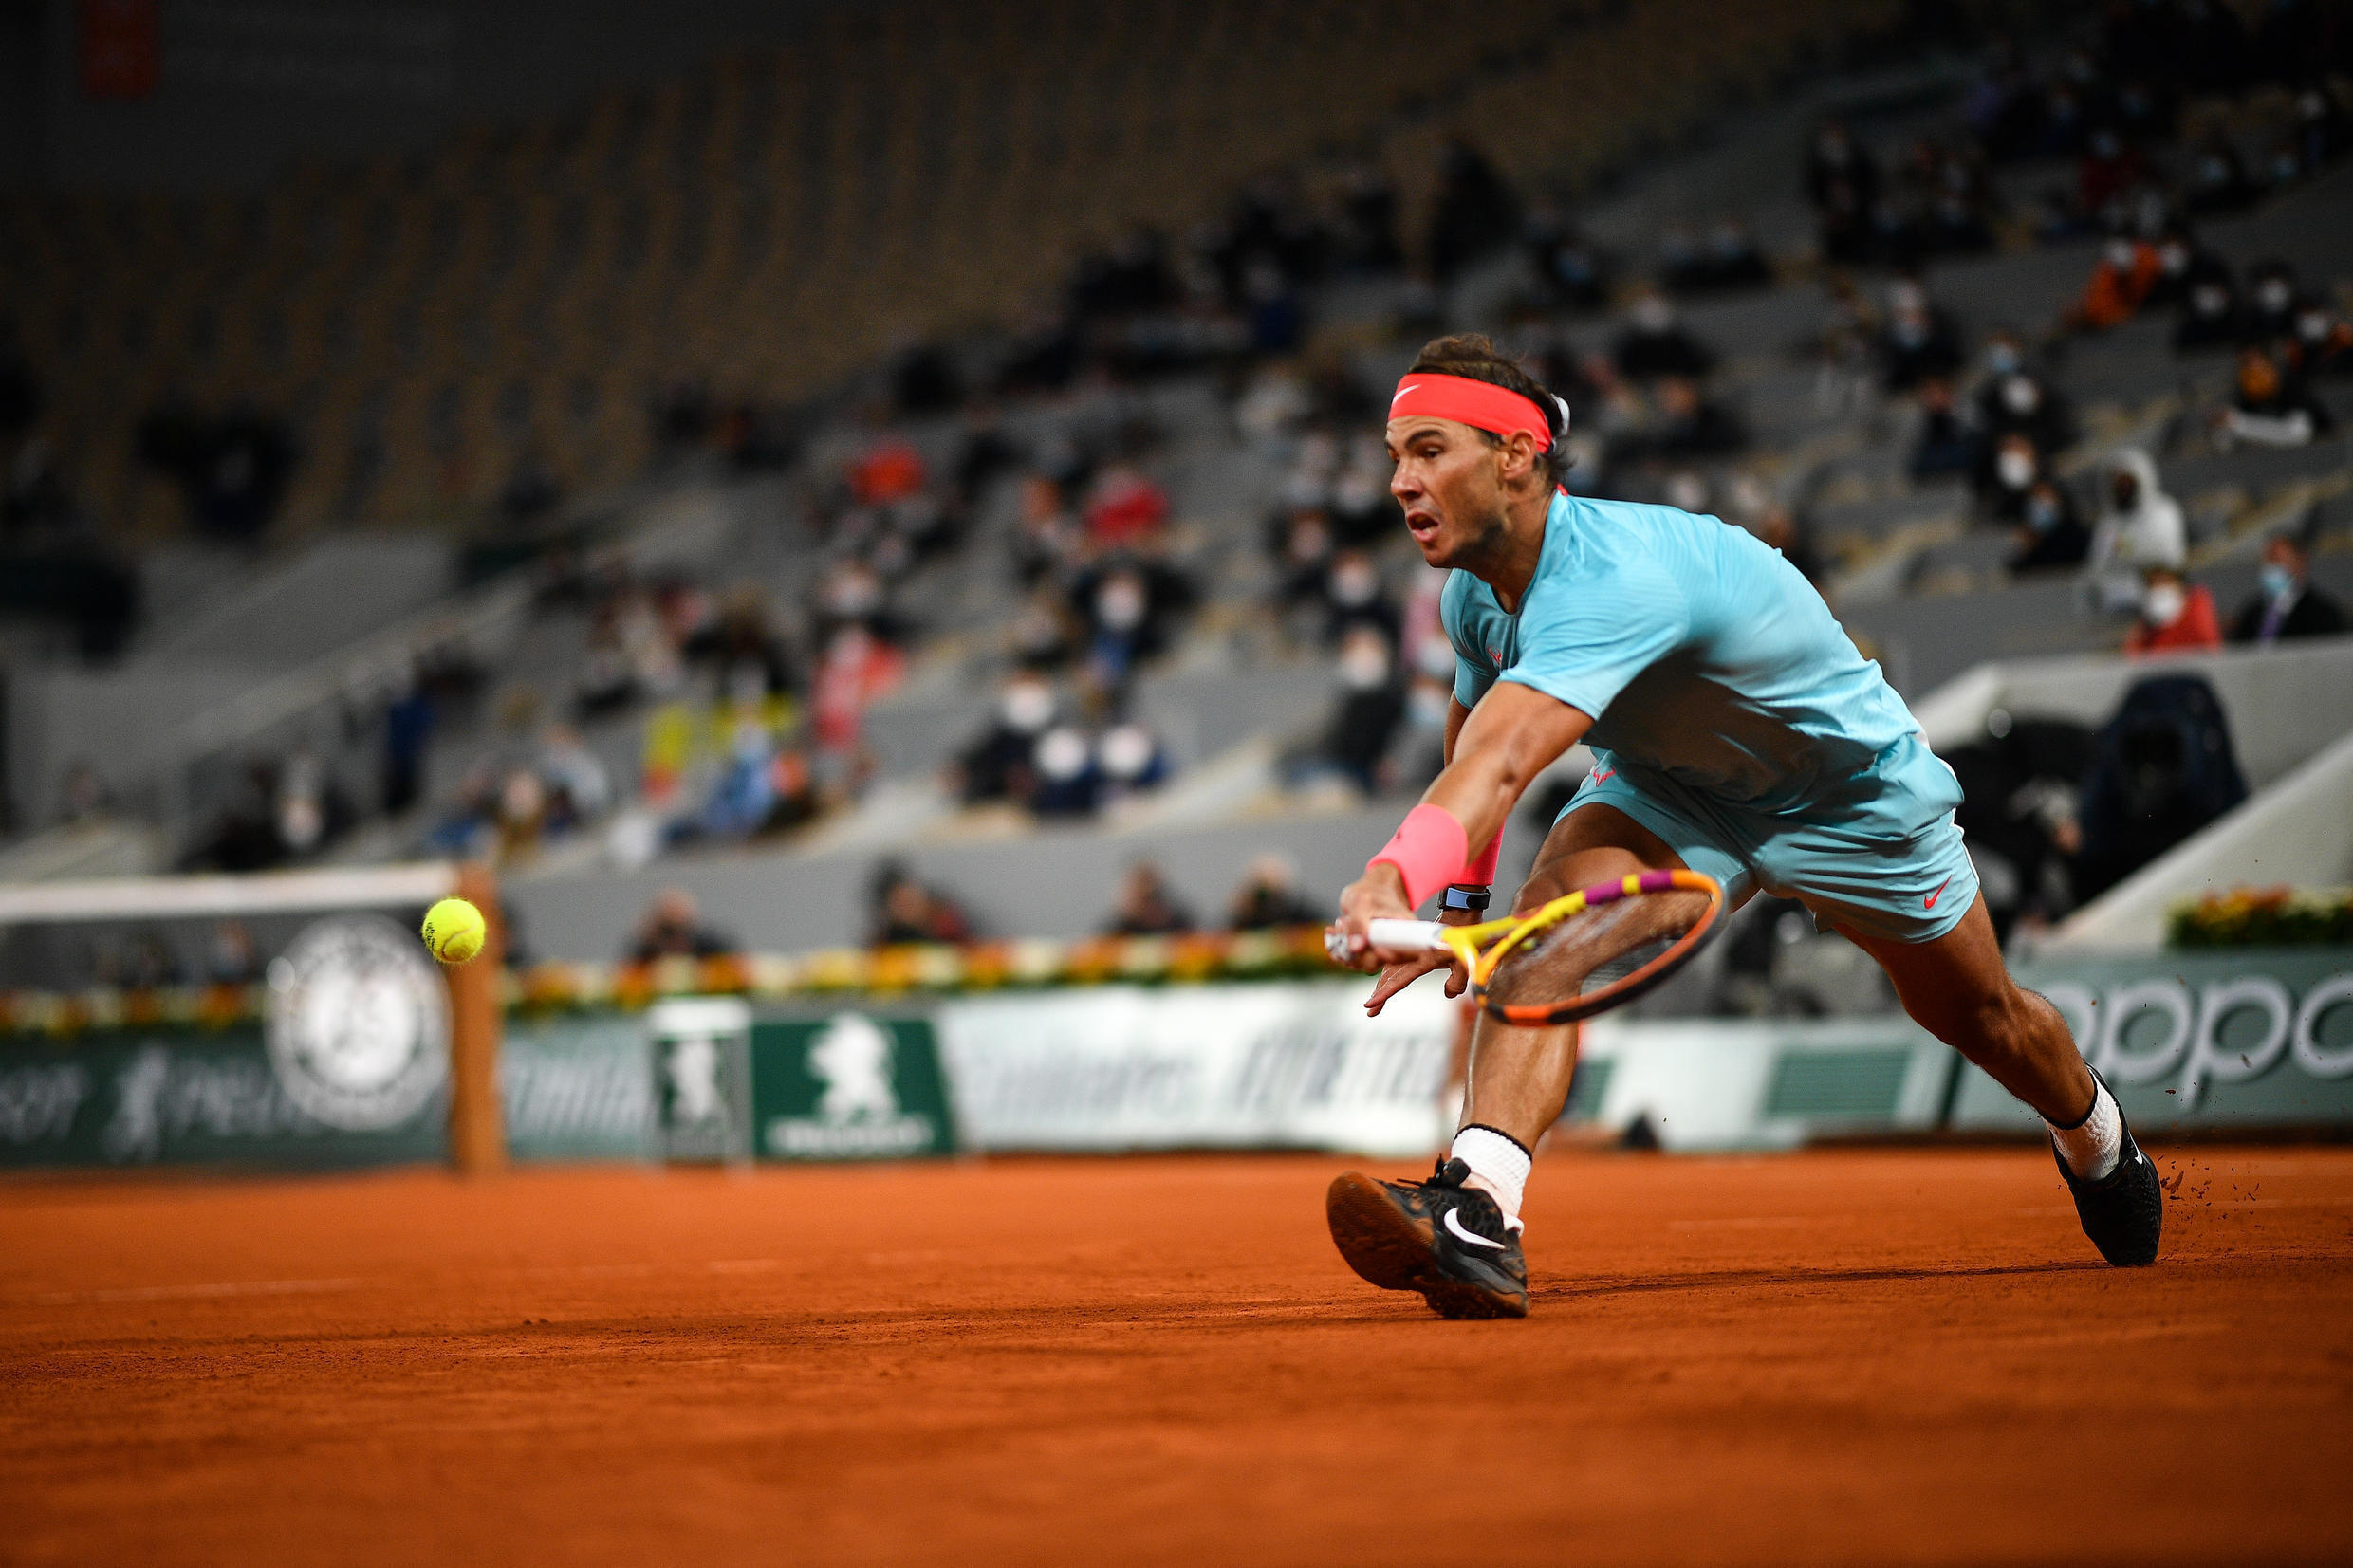 Rafael Nadal won the French Open title for a 13th time last year